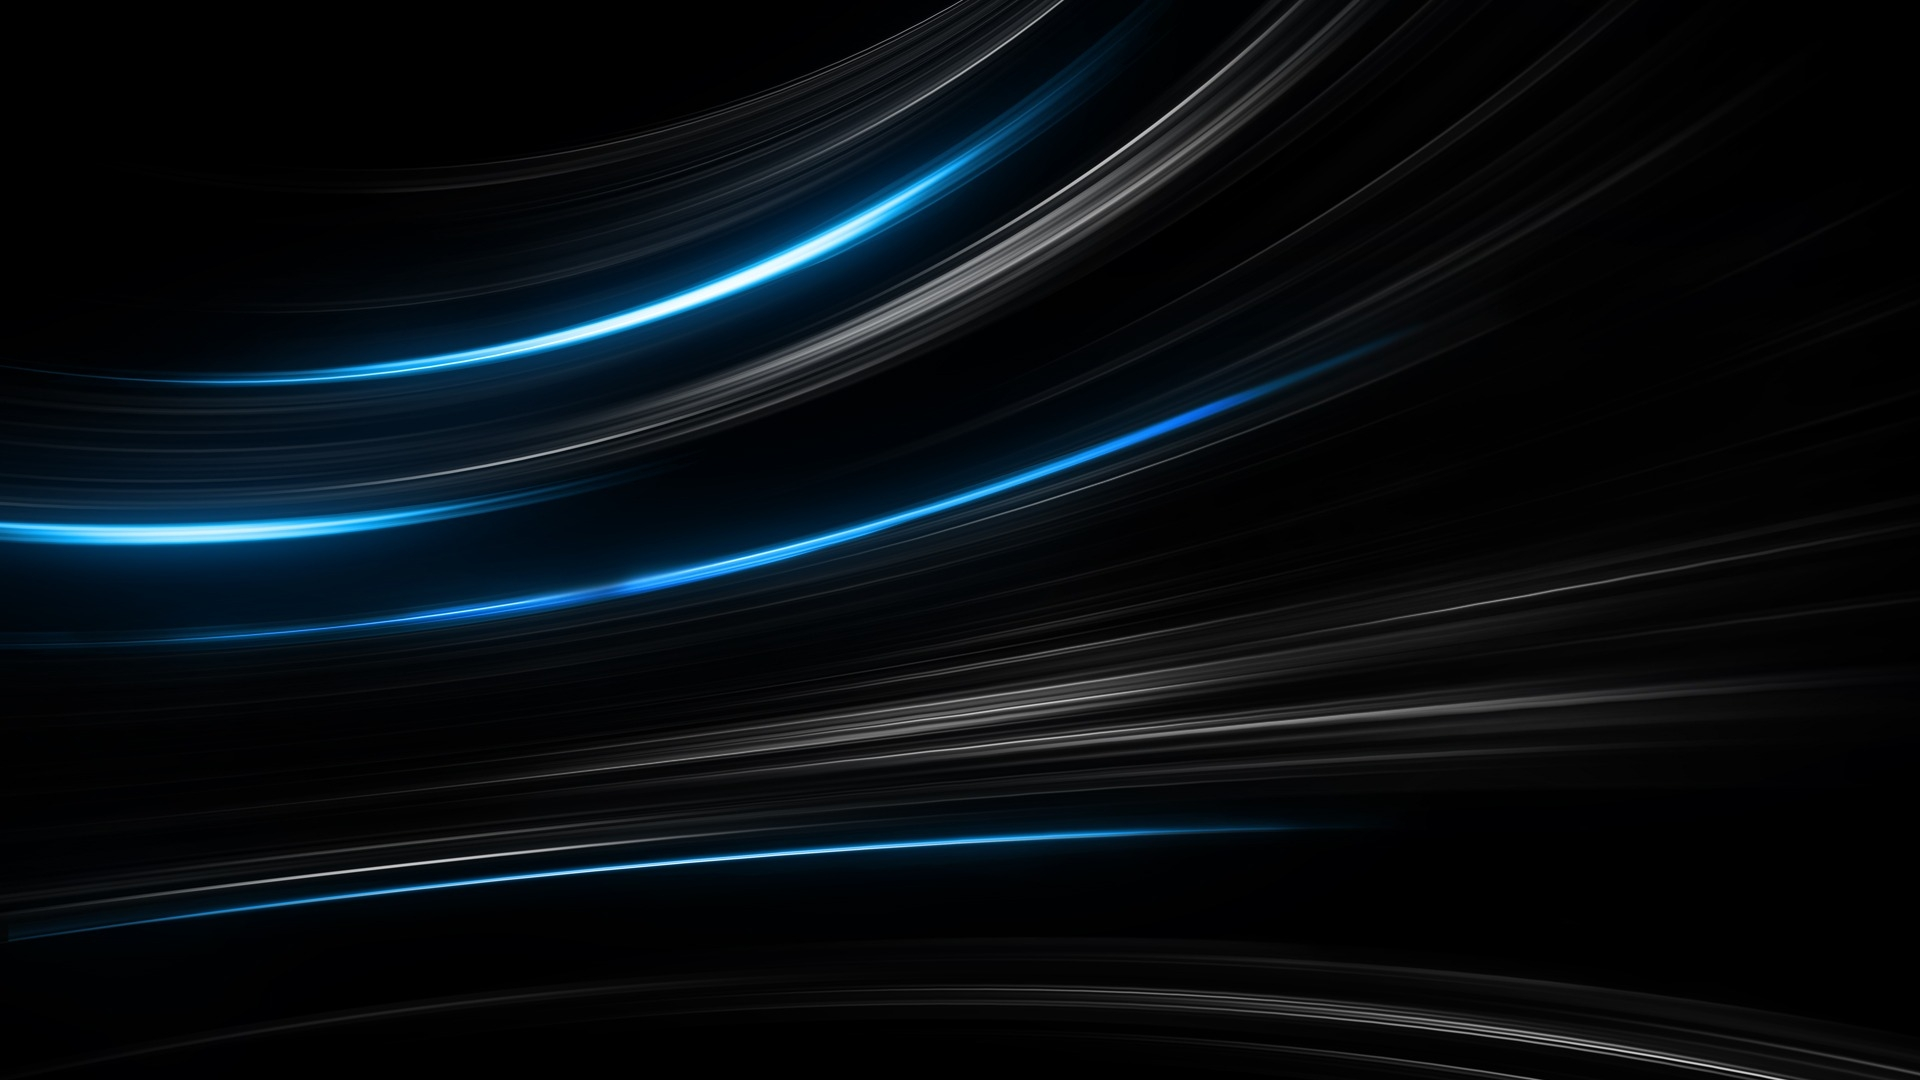 Black Blue Abstract Stripes Wallpaper Background Full HD 1080p 1920x1080